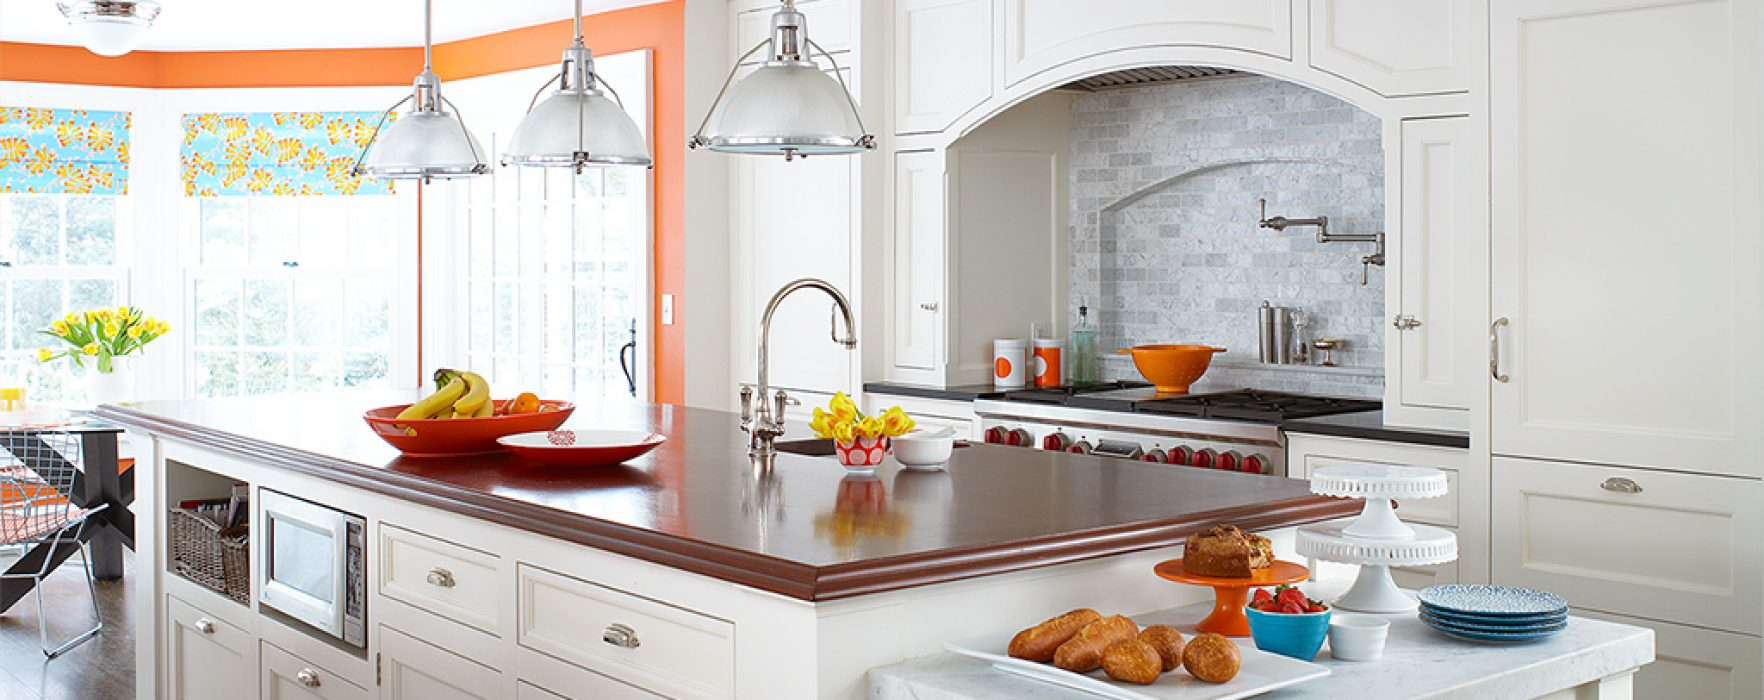 Design the Perfect Kitchen with These Remodeling Tips | Better Homes ...